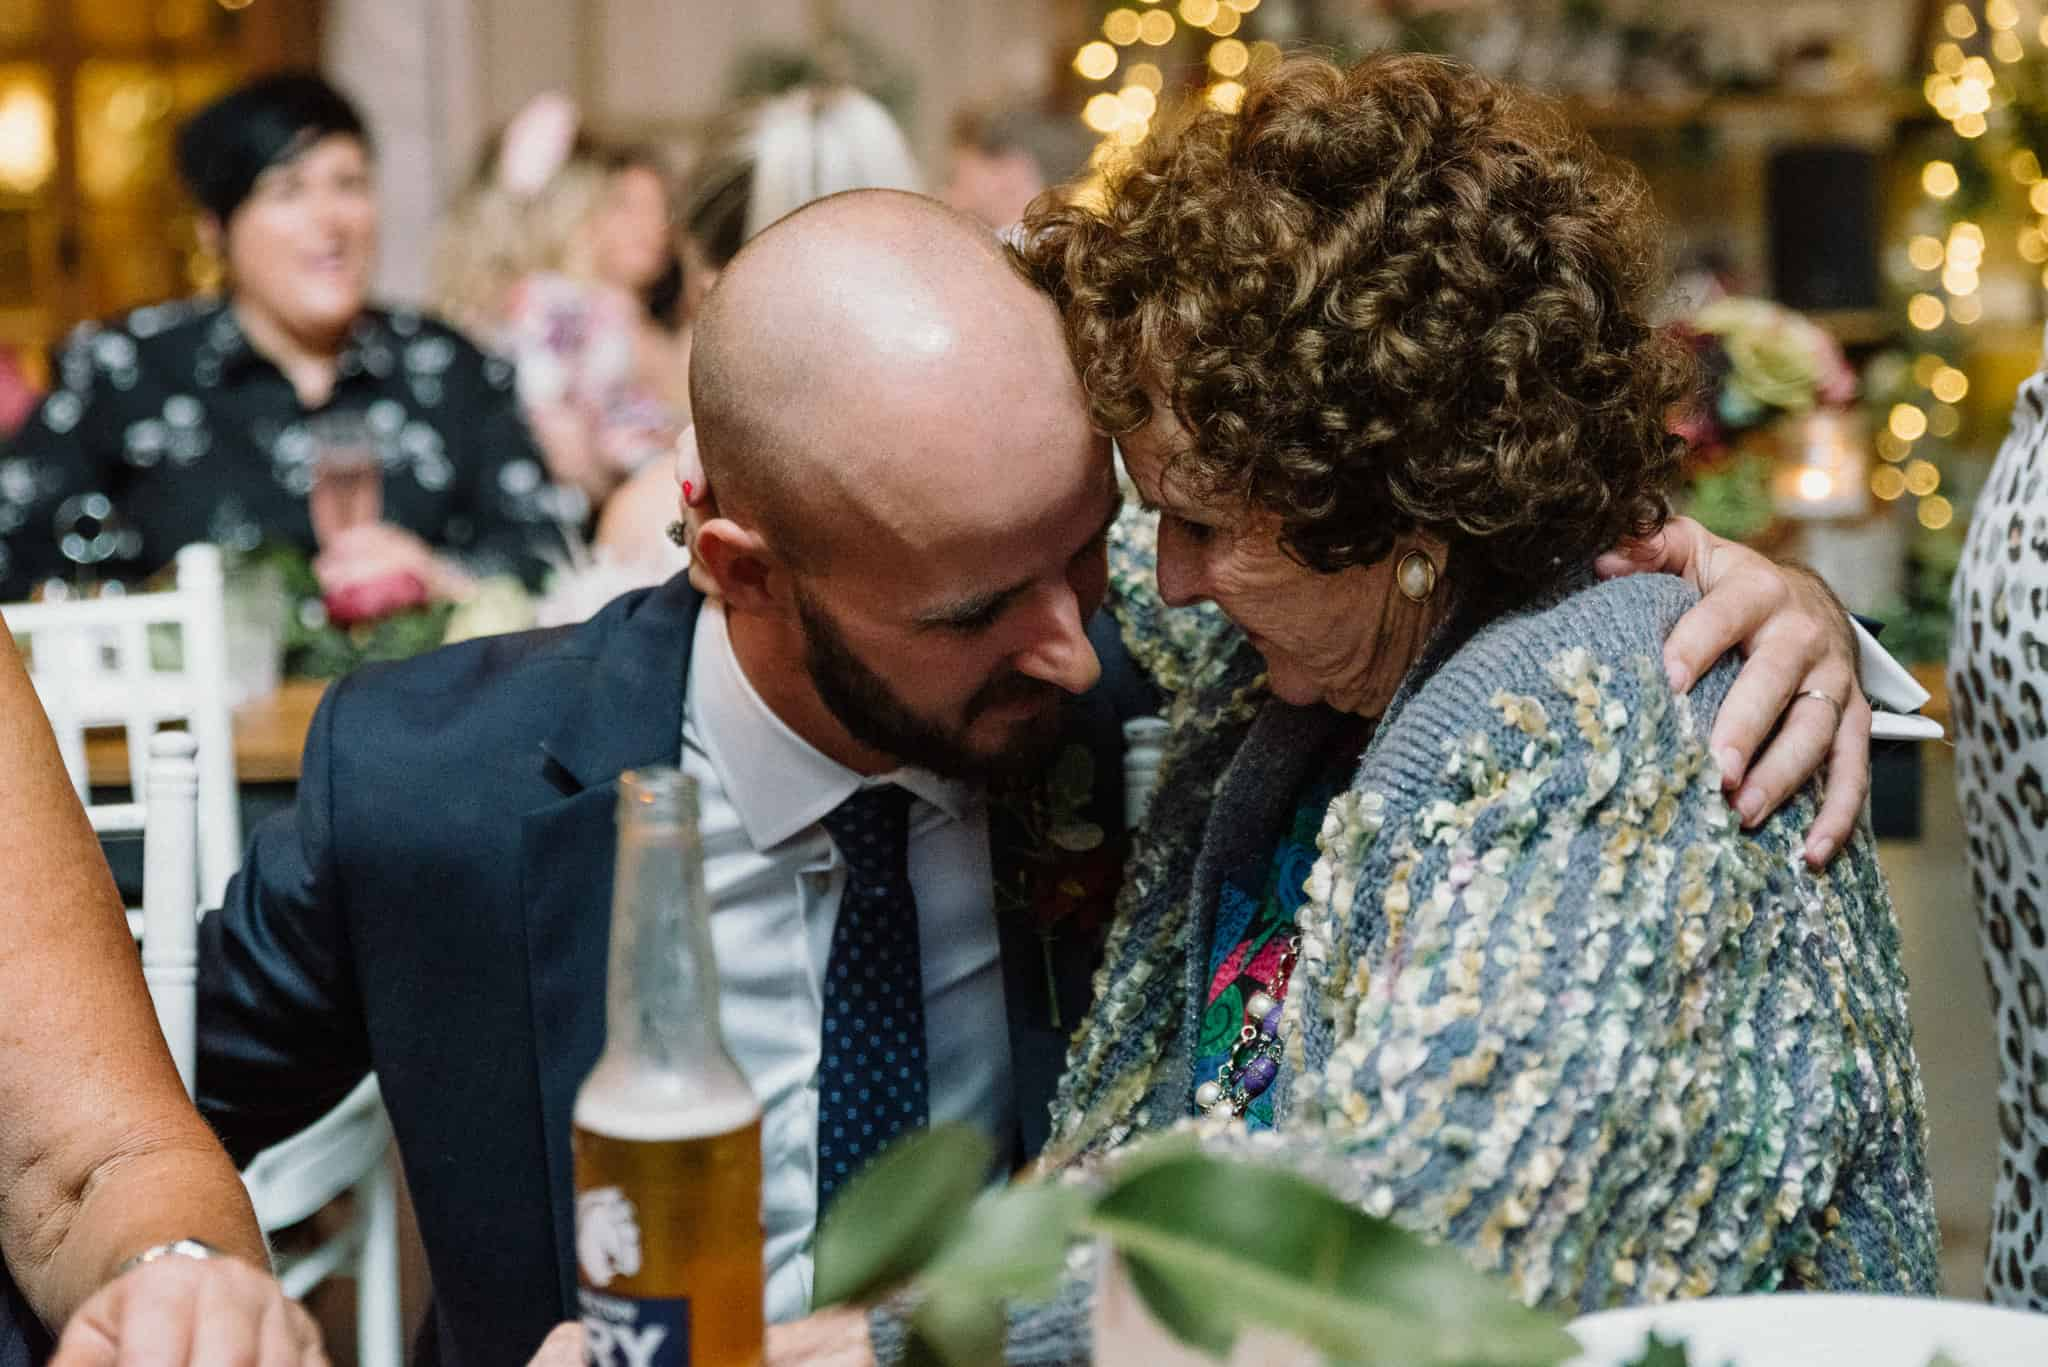 Groom shares moment with elderly guest during reception Captured by James White Hunter Valley Wedding Photographer